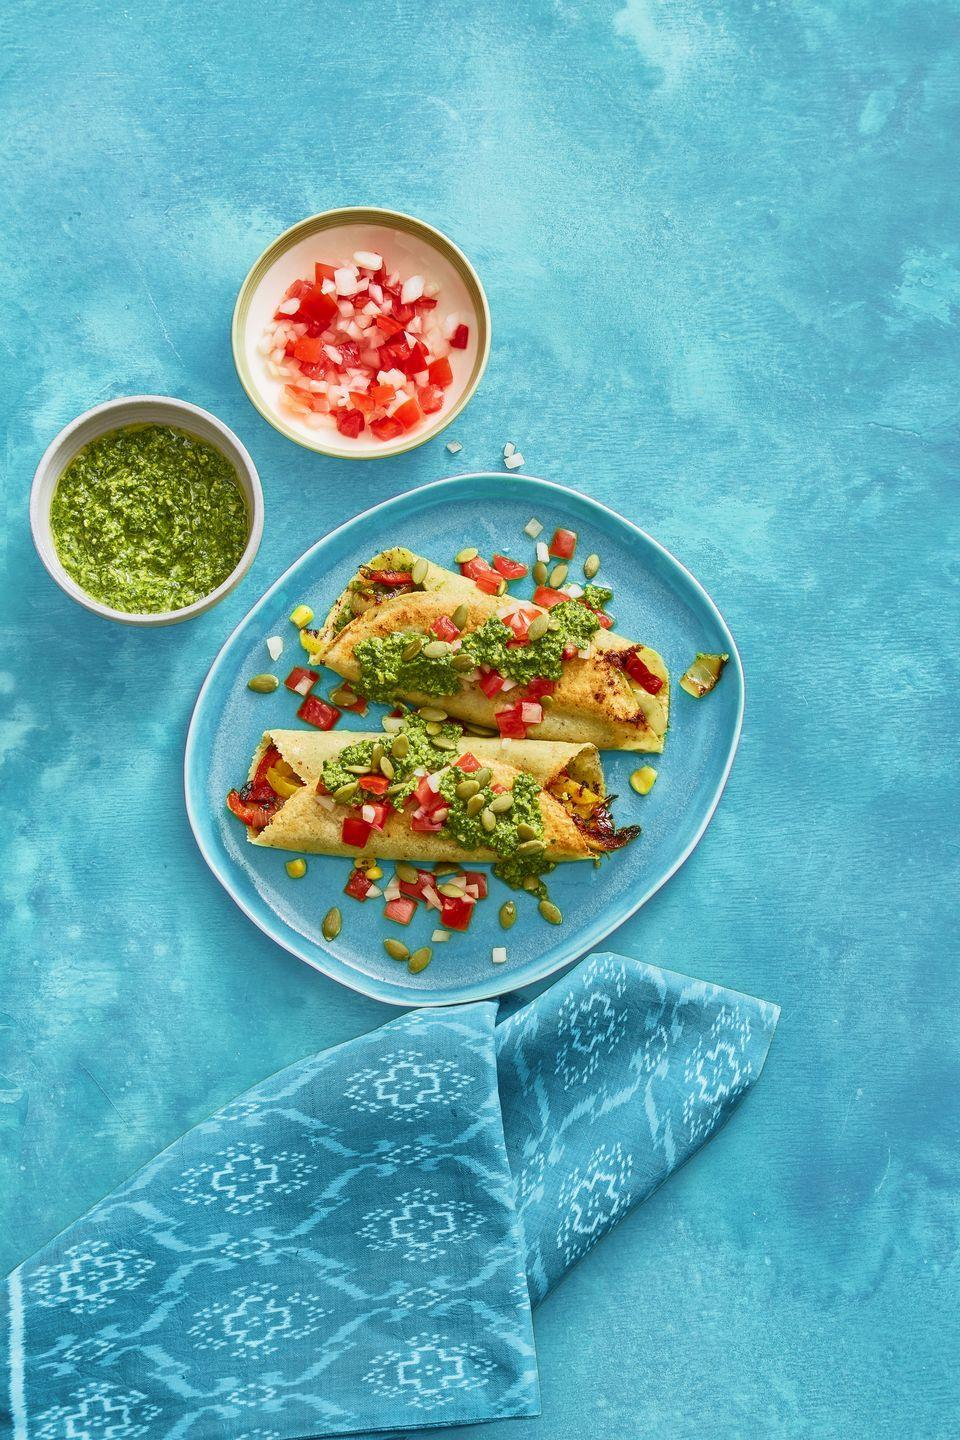 """<p>These enchiladas are proof that you enjoy pumpkin all year long.</p><p><a href=""""https://www.womansday.com/food-recipes/food-drinks/recipes/a60792/enchiladas-with-pumpkin-seed-salsa-recipe/"""" rel=""""nofollow noopener"""" target=""""_blank"""" data-ylk=""""slk:Get the Enchiladas with Pumpkin Seed Salsa recipe."""" class=""""link rapid-noclick-resp""""><em>Get the Enchiladas with Pumpkin Seed Salsa recipe.</em></a></p>"""